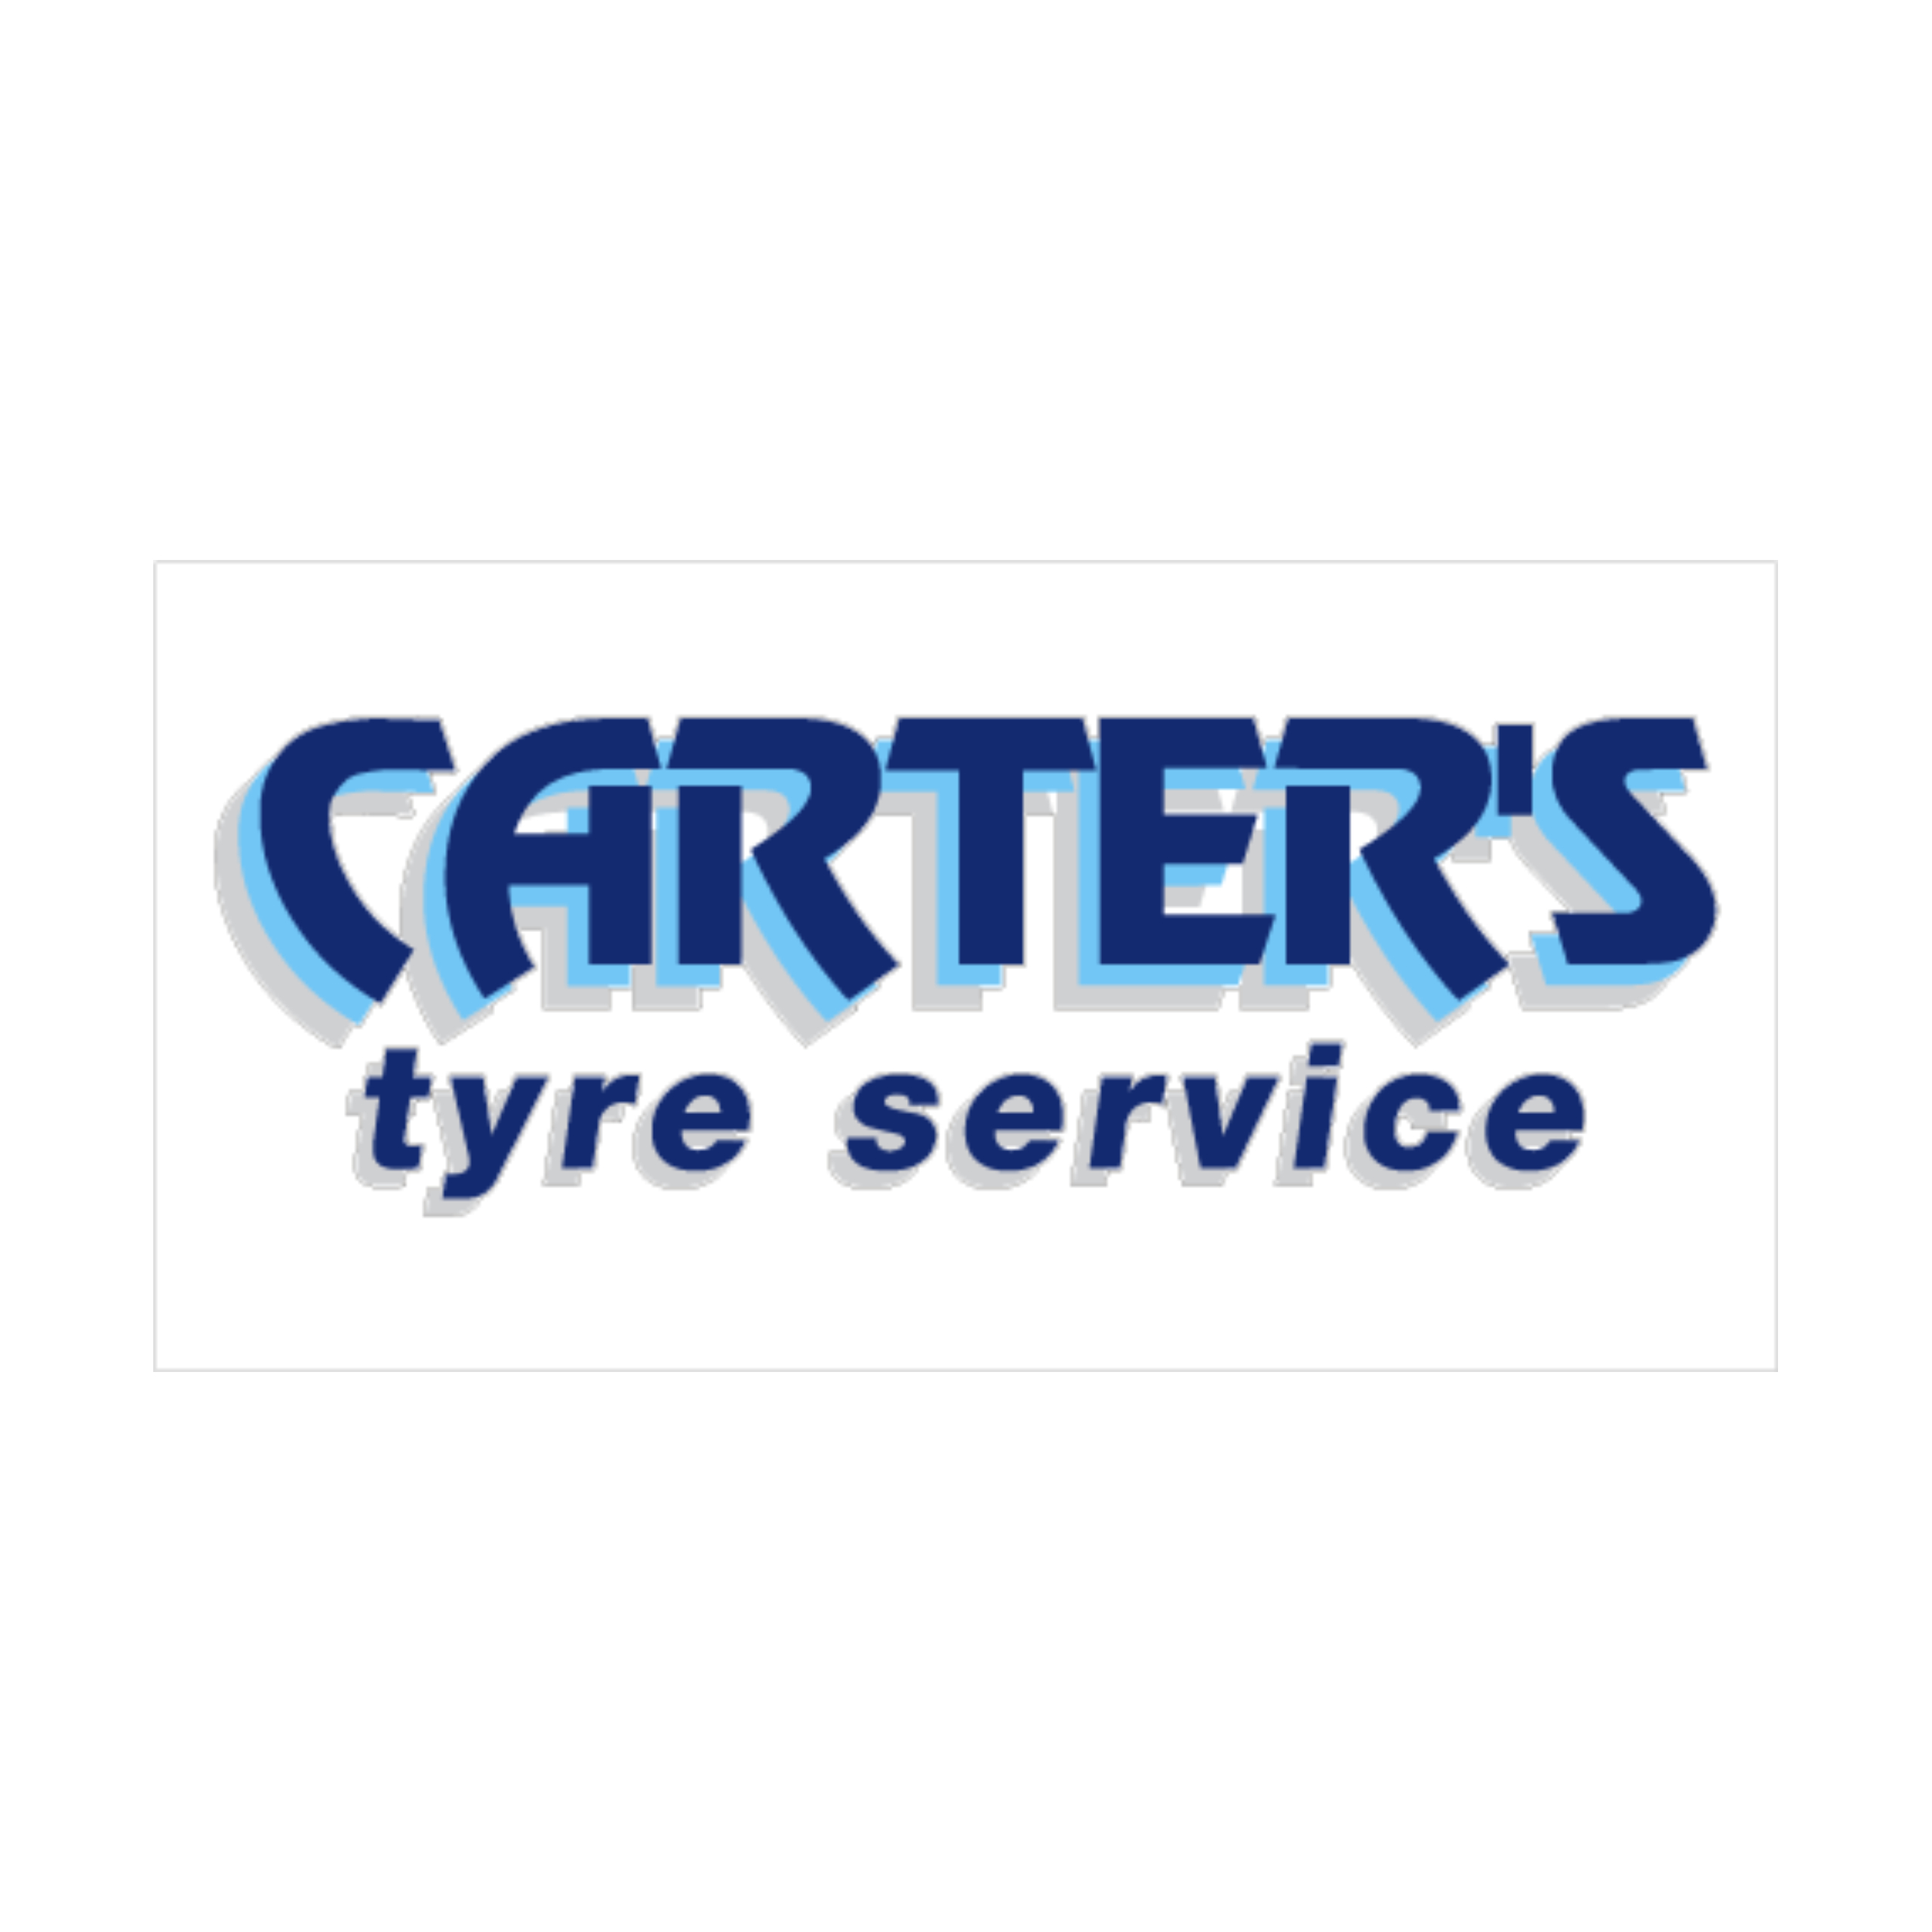 Carters Tyre Service